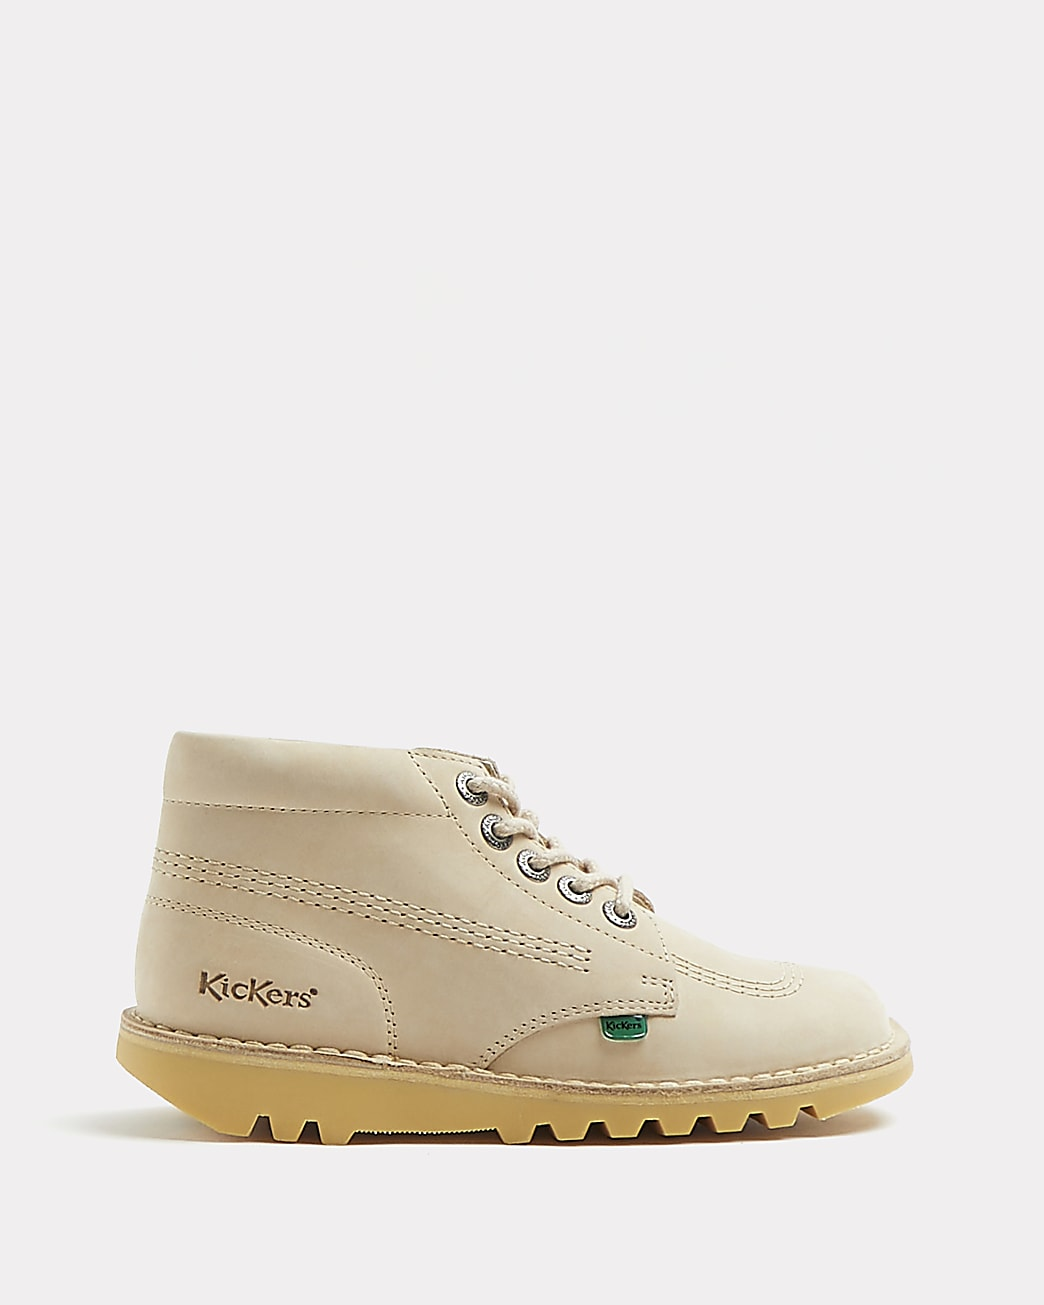 Kickers beige ankle boots